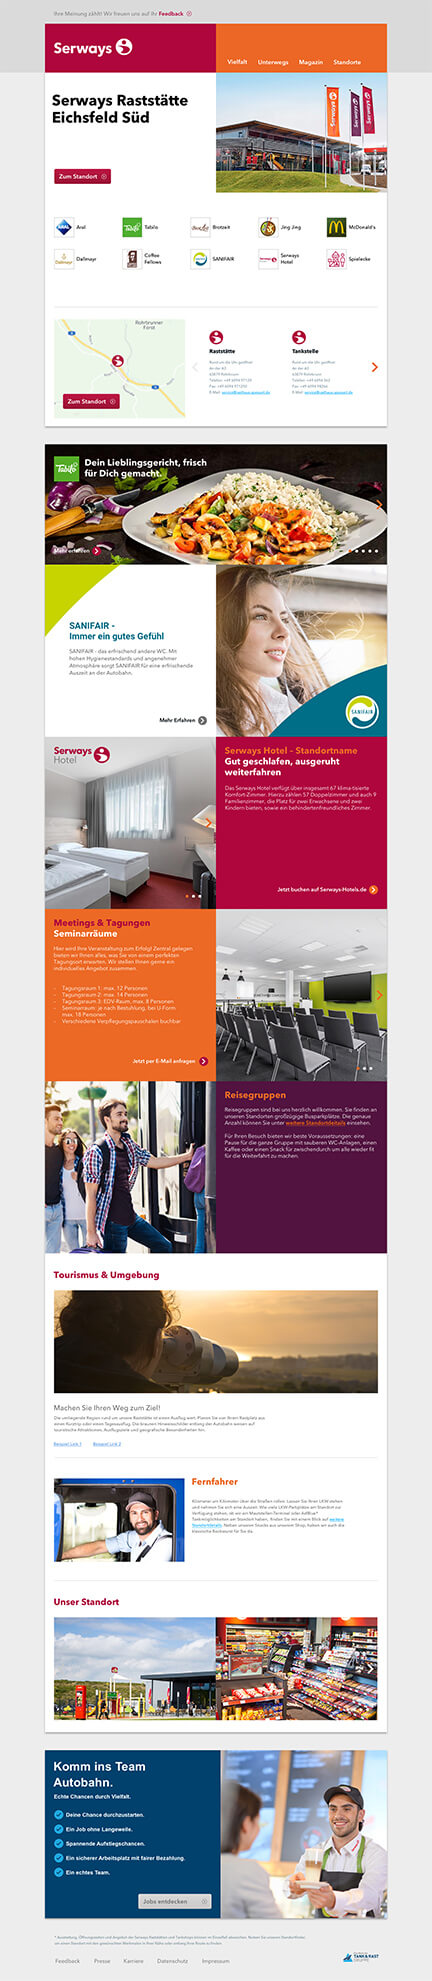 Serways Website Design Standort